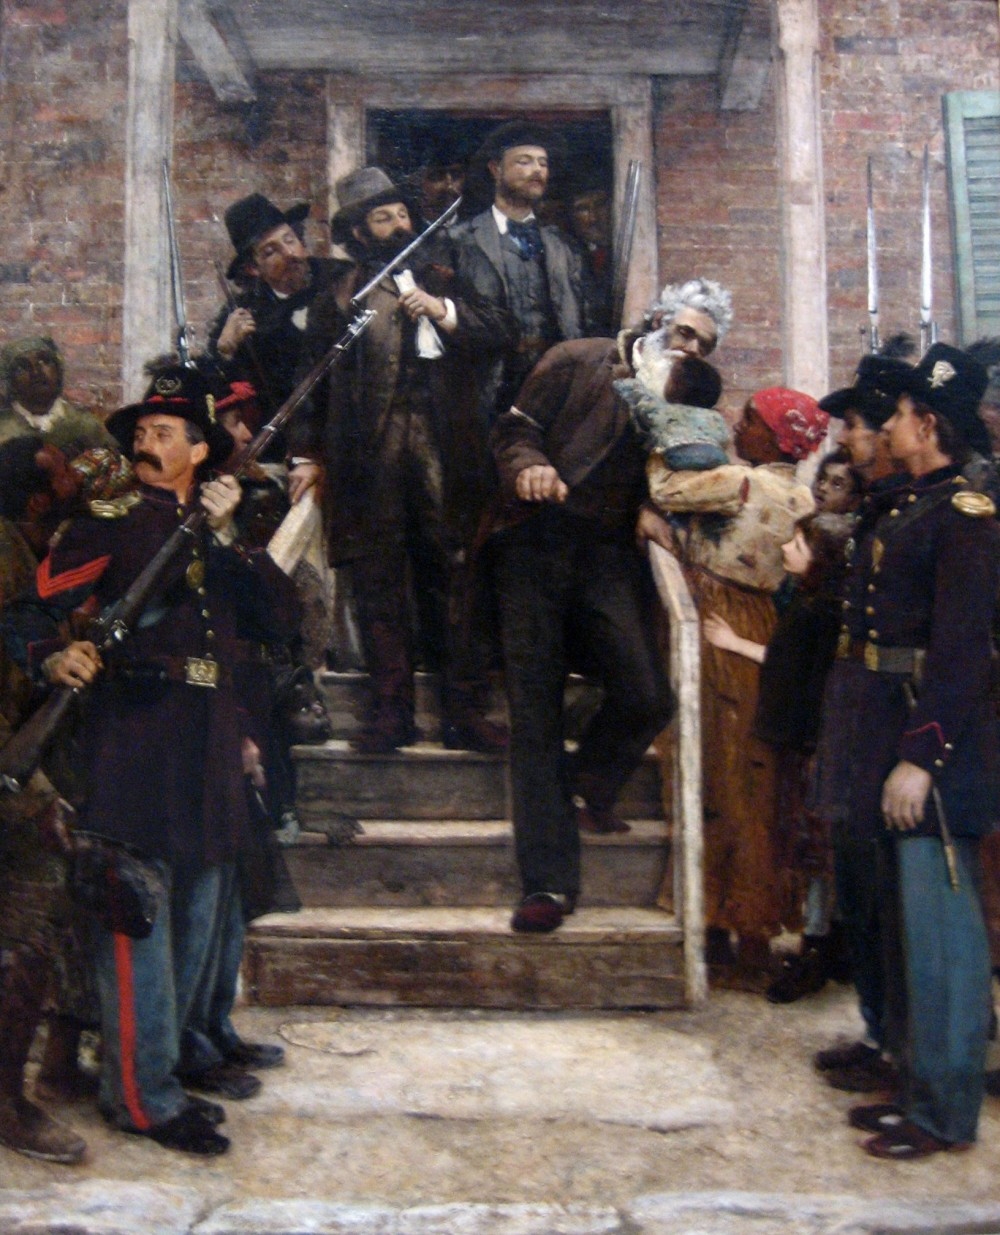 The execution of John Brown made him a martyr in abolitionist circles and a confirmed traitor in southern crowds. Both of these images continued to pervade public memory after the Civil War, but in the North especially (where so many soldiers had died to help end slavery) his name was admired. Over two decades after Brown's death, Thomas Hovenden portrayed Brown as a saint. As he is lead to his execution for attempting to destroy slavery, Brown poignantly leans over a rail to kiss a black baby. Thomas Hovenden, The Last Moments of John Brown, c. 1882-1884. Wikimedia, http://commons.wikimedia.org/wiki/File:%27The_Last_Moments_of_John_Brown%27,_oil_on_canvas_painting_by_Thomas_Hovenden.jpg.